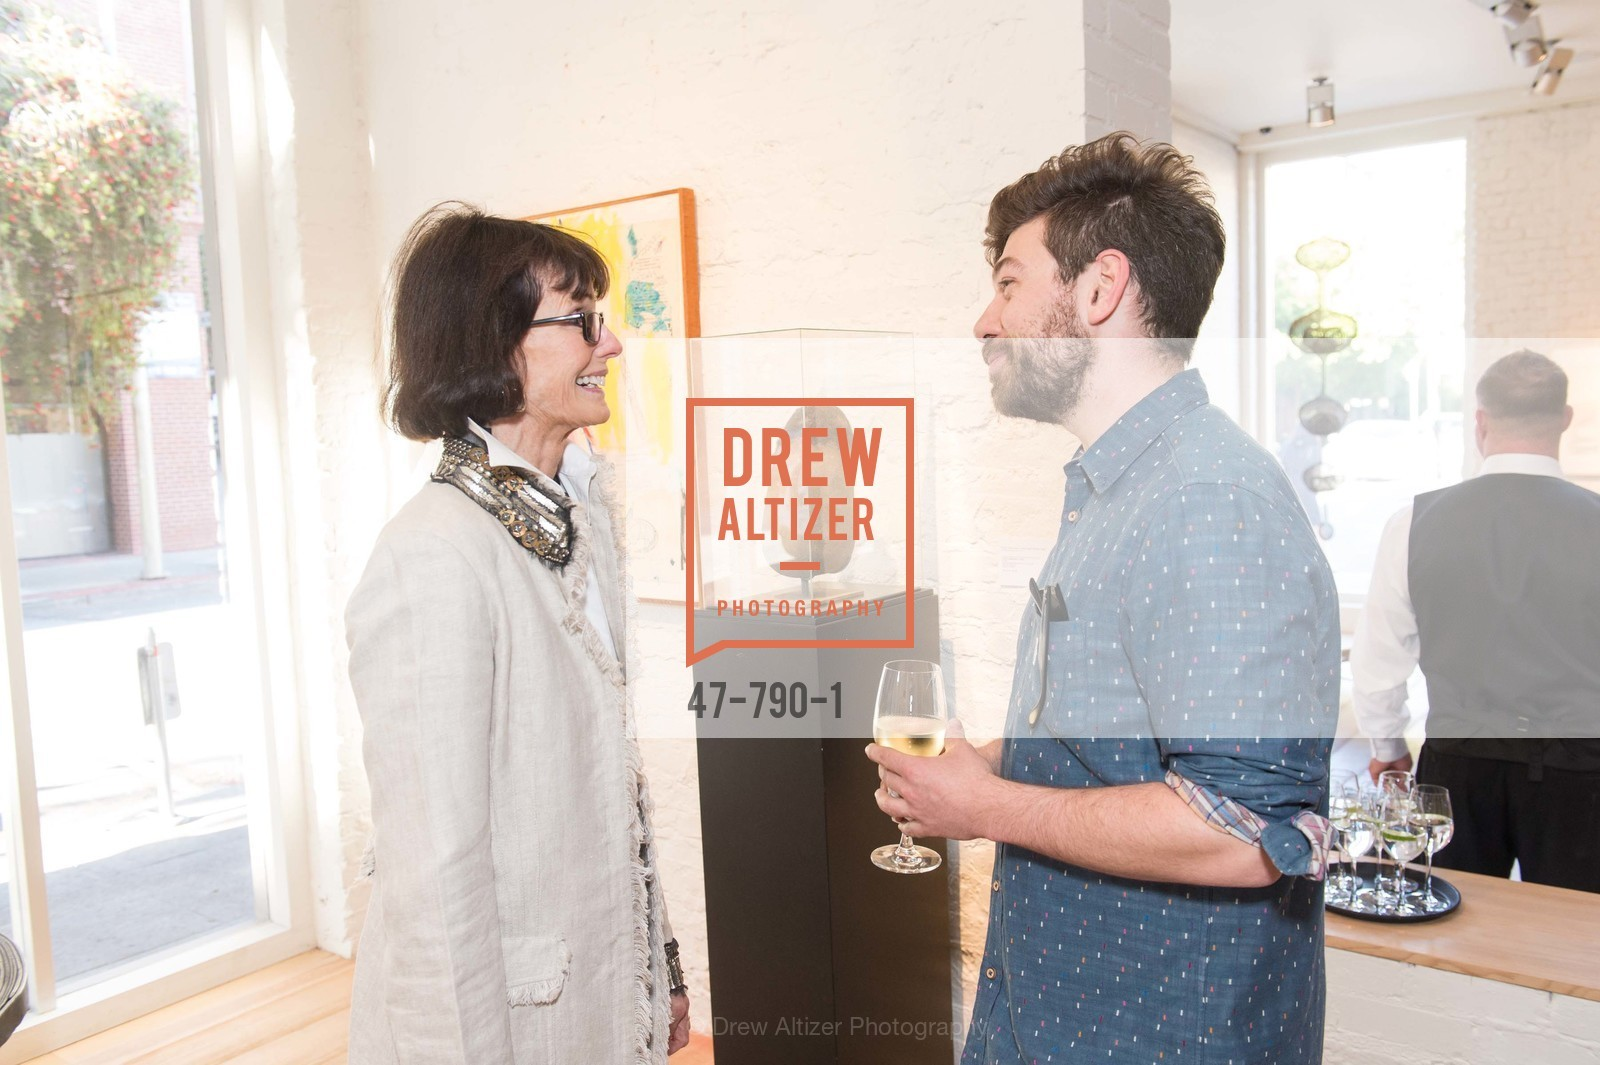 Sharon Wick, Andrew Mcclintock, Post War and Contemporary Preview at HEDGE GALLERY, US, April 16th, 2015,Drew Altizer, Drew Altizer Photography, full-service agency, private events, San Francisco photographer, photographer california